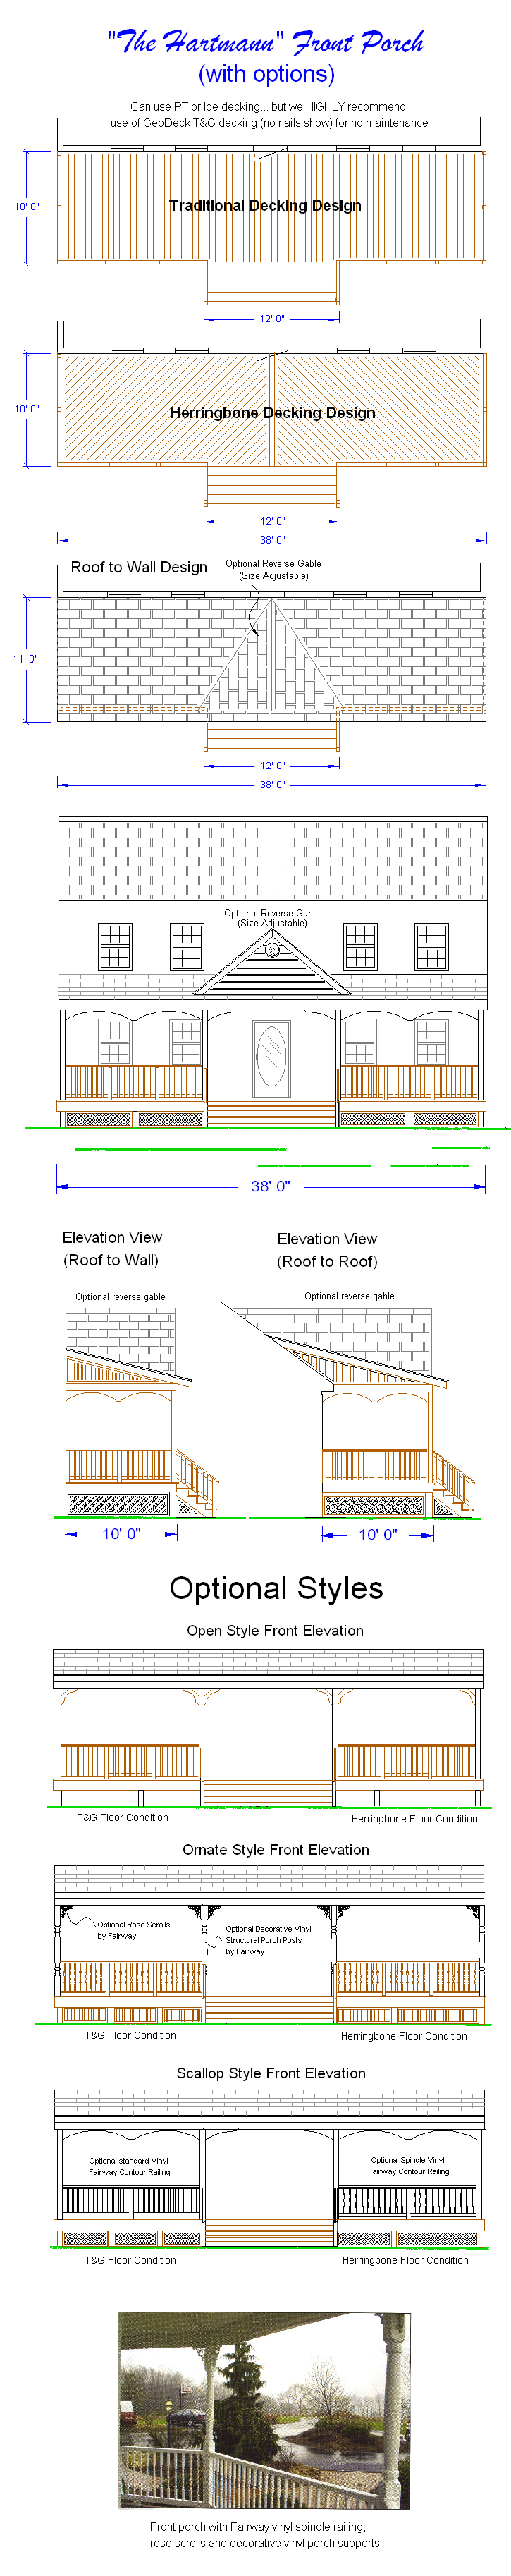 porch-design-hartmann